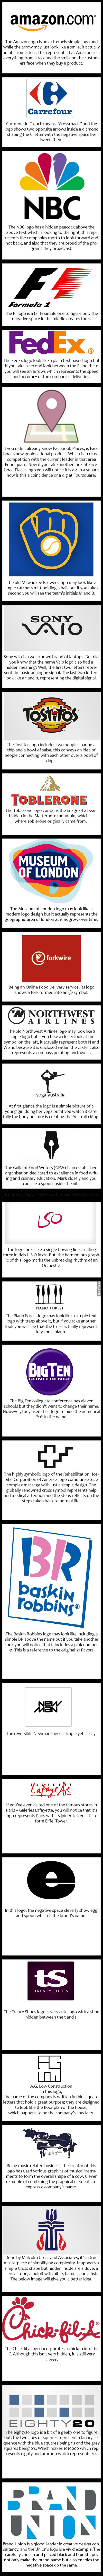 These companies designed super clever logos that make you think about their entire message. Does your company have a good #logo? #marketing #business